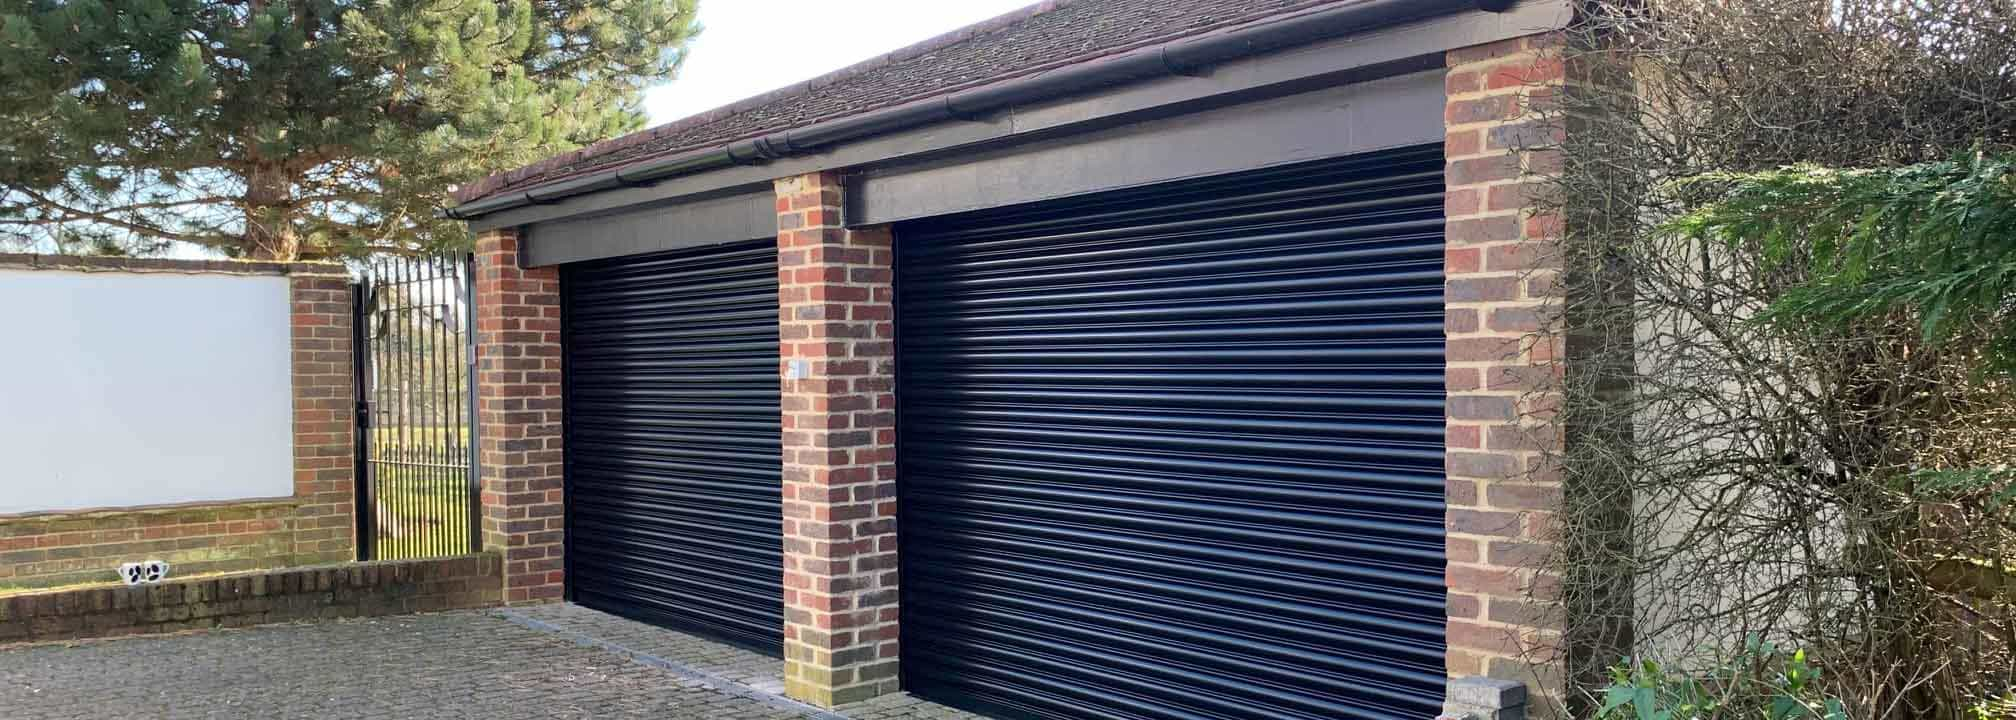 Westwood Security Shutters Ltd Roller Shutter Fire